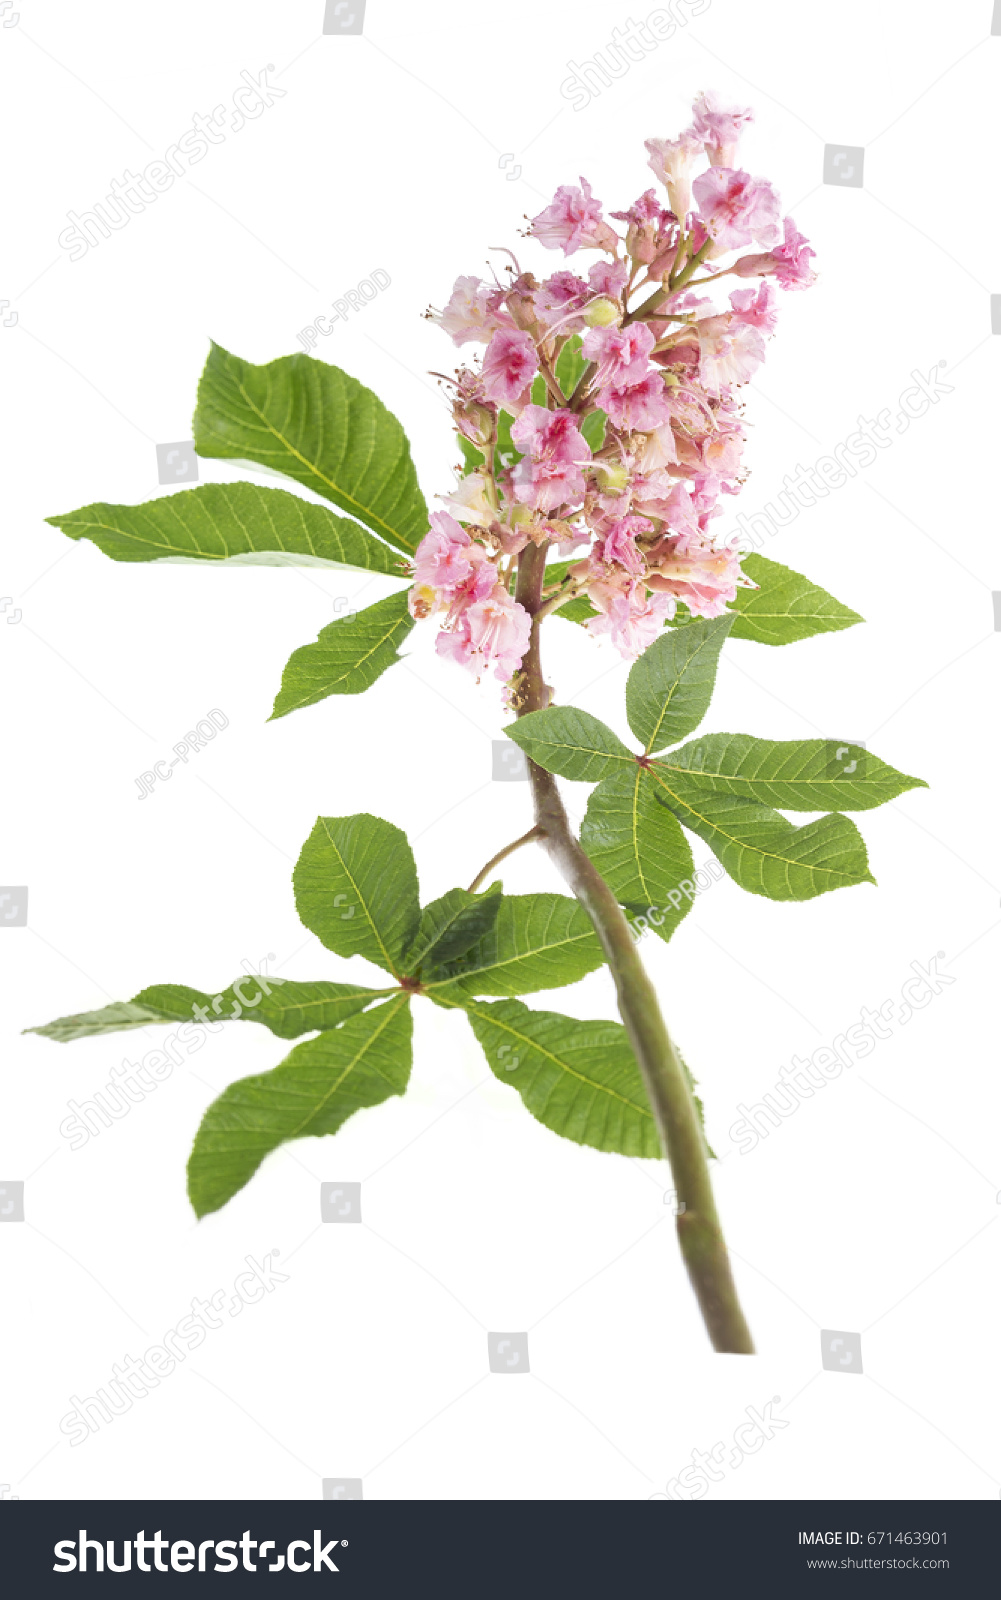 A Flowering Apple Tree Branch Isolated On White Background Ez Canvas